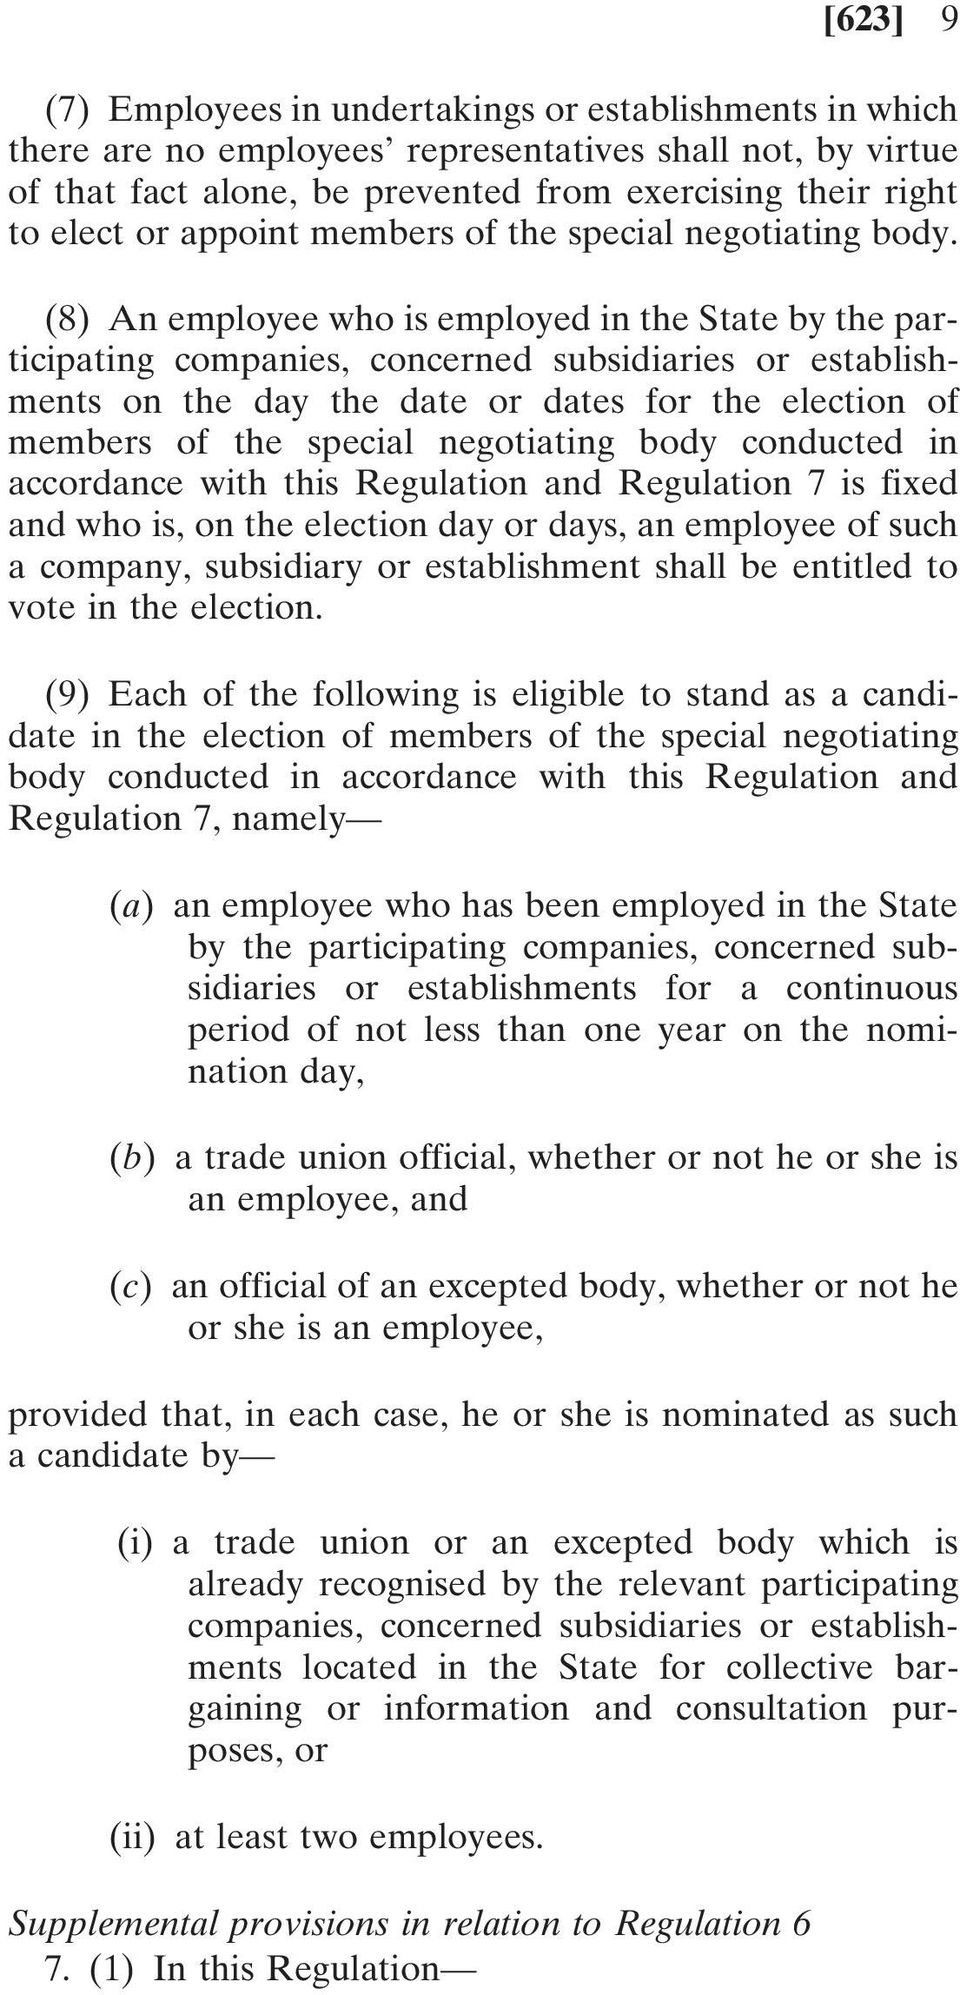 (8) An employee who is employed in the State by the participating companies, concerned subsidiaries or establishments on the day the date or dates for the election of members of the special